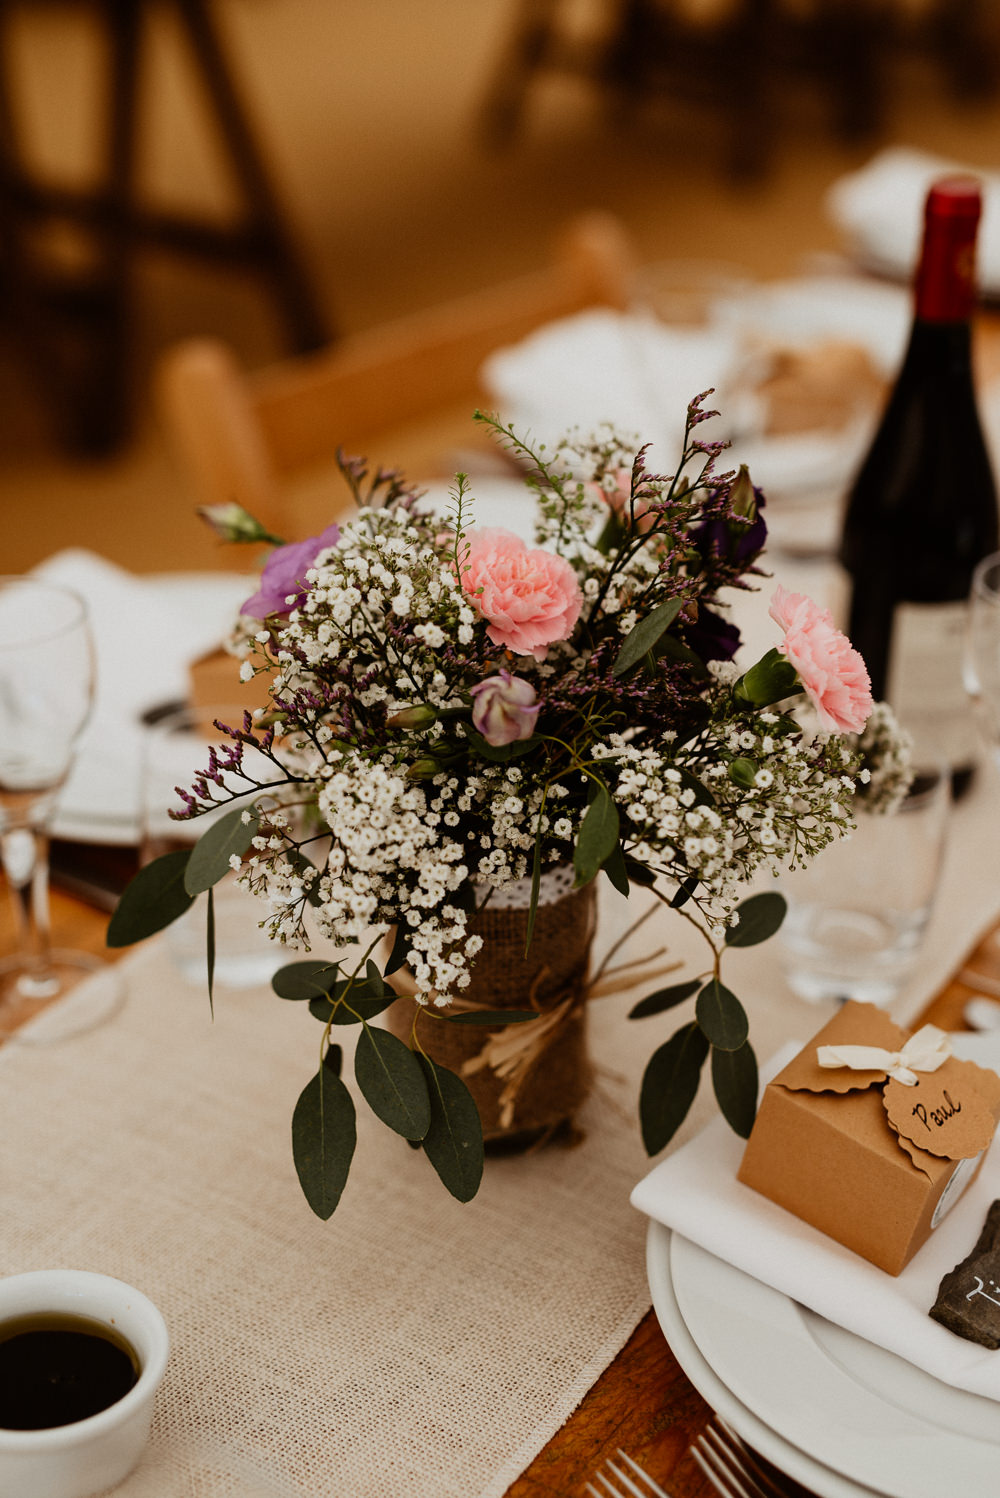 Table Flowers Centrepiece Jar North Cornwall Wedding Taylor-Hughes Photography